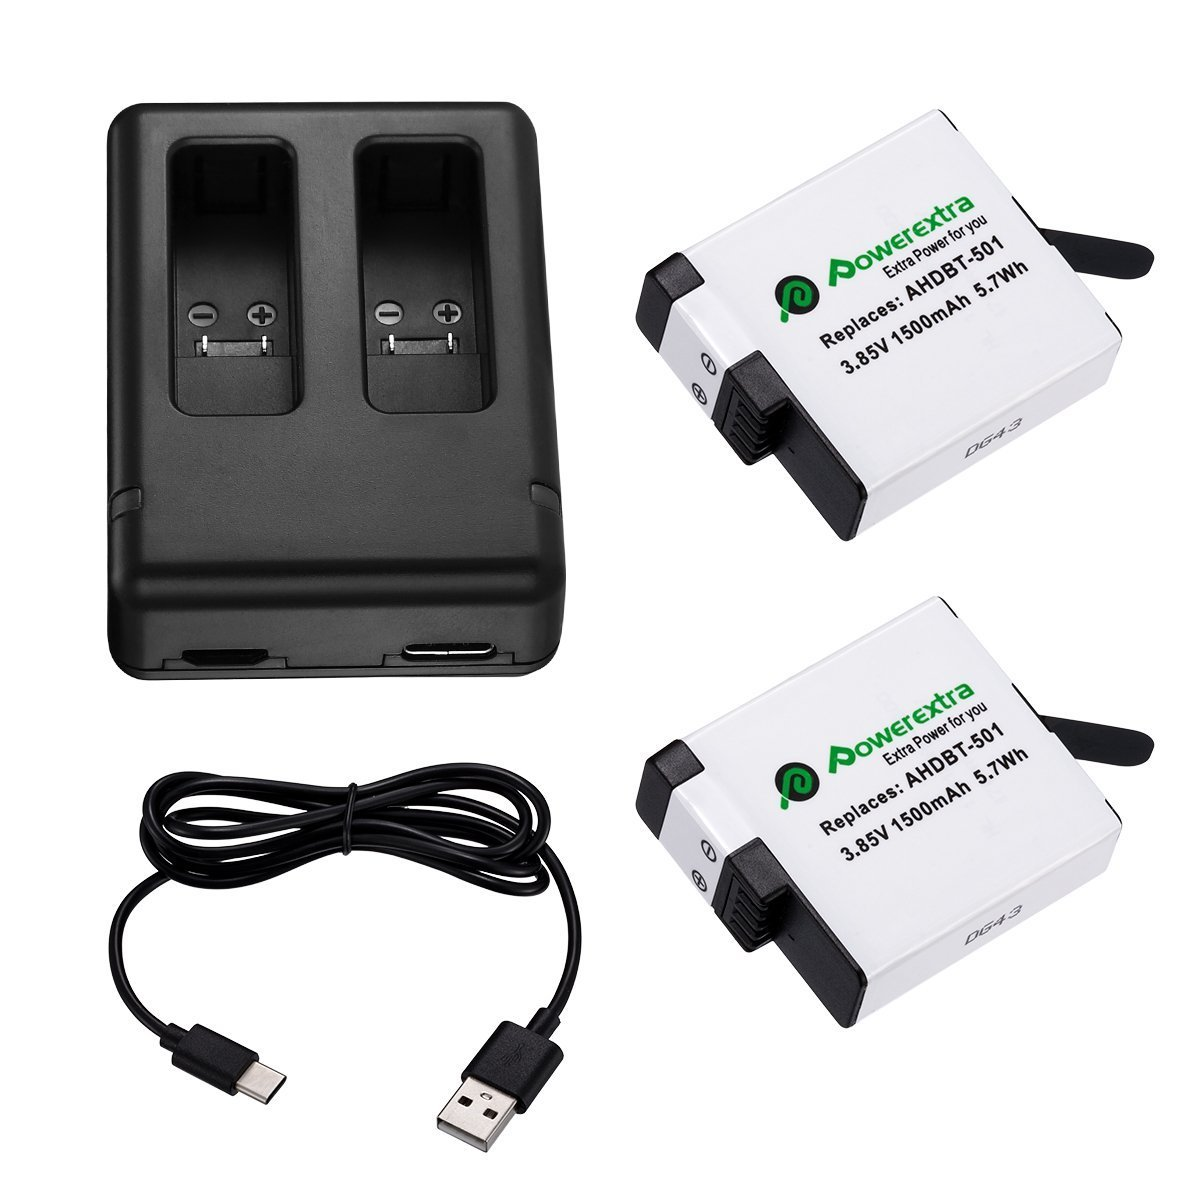 Powerextra Upgraded 2 Pack Battery with Dual Charger for GoPro HERO (2018) GoPro HERO 6 GoPro HERO 5 Black (Compatible with Firmware v02.60, v02.51, v02.00, v01.57, v01.55, 1.60 and Future Updates)